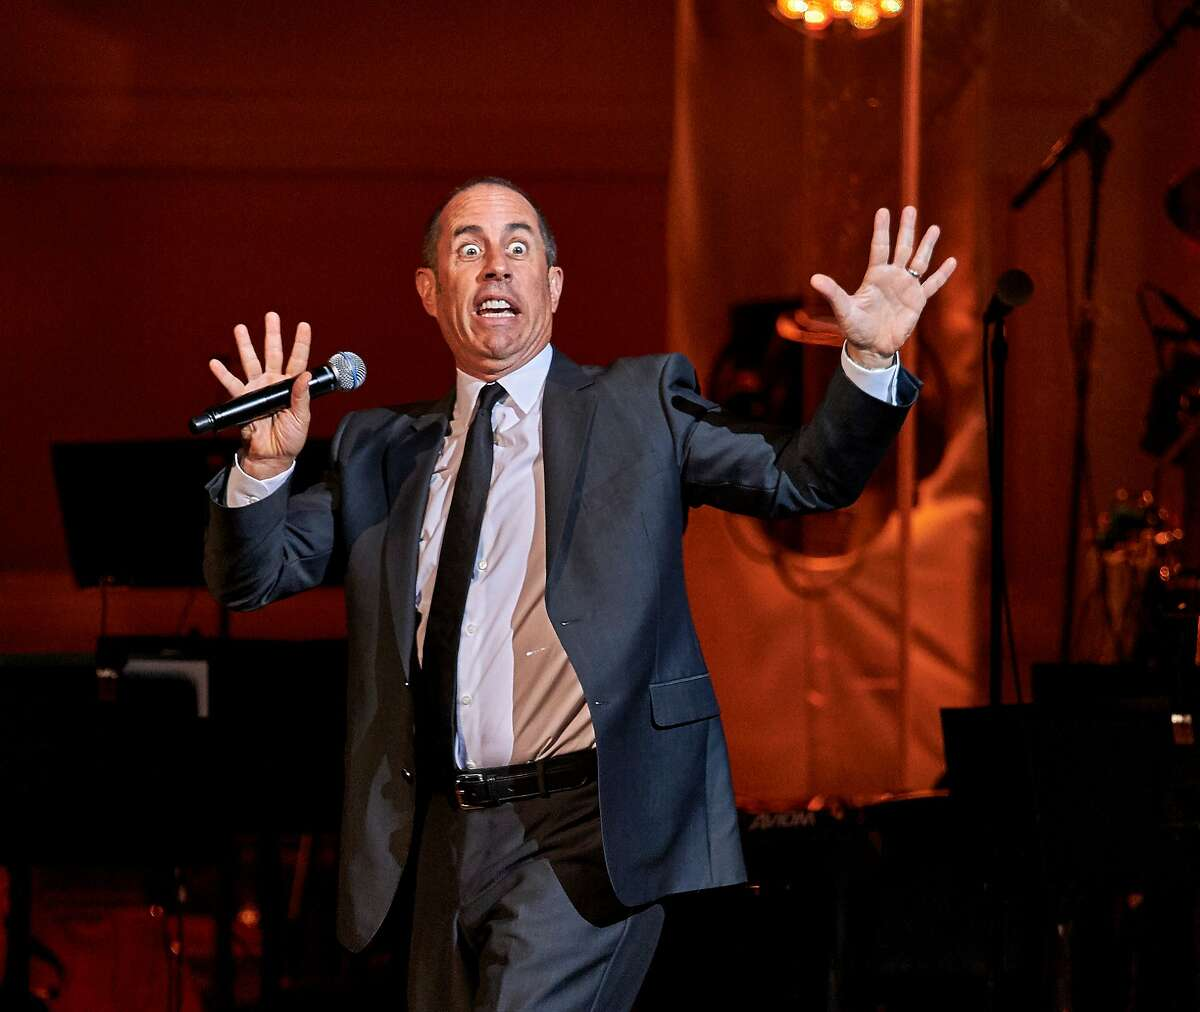 Jerry Seinfeld performs at the David Lynch Foundation Benefit Concert at Carnegie Hall on Wednesday, Nov. 4, 2015, in New York. (Photo by Robert Altman /Invision/AP)